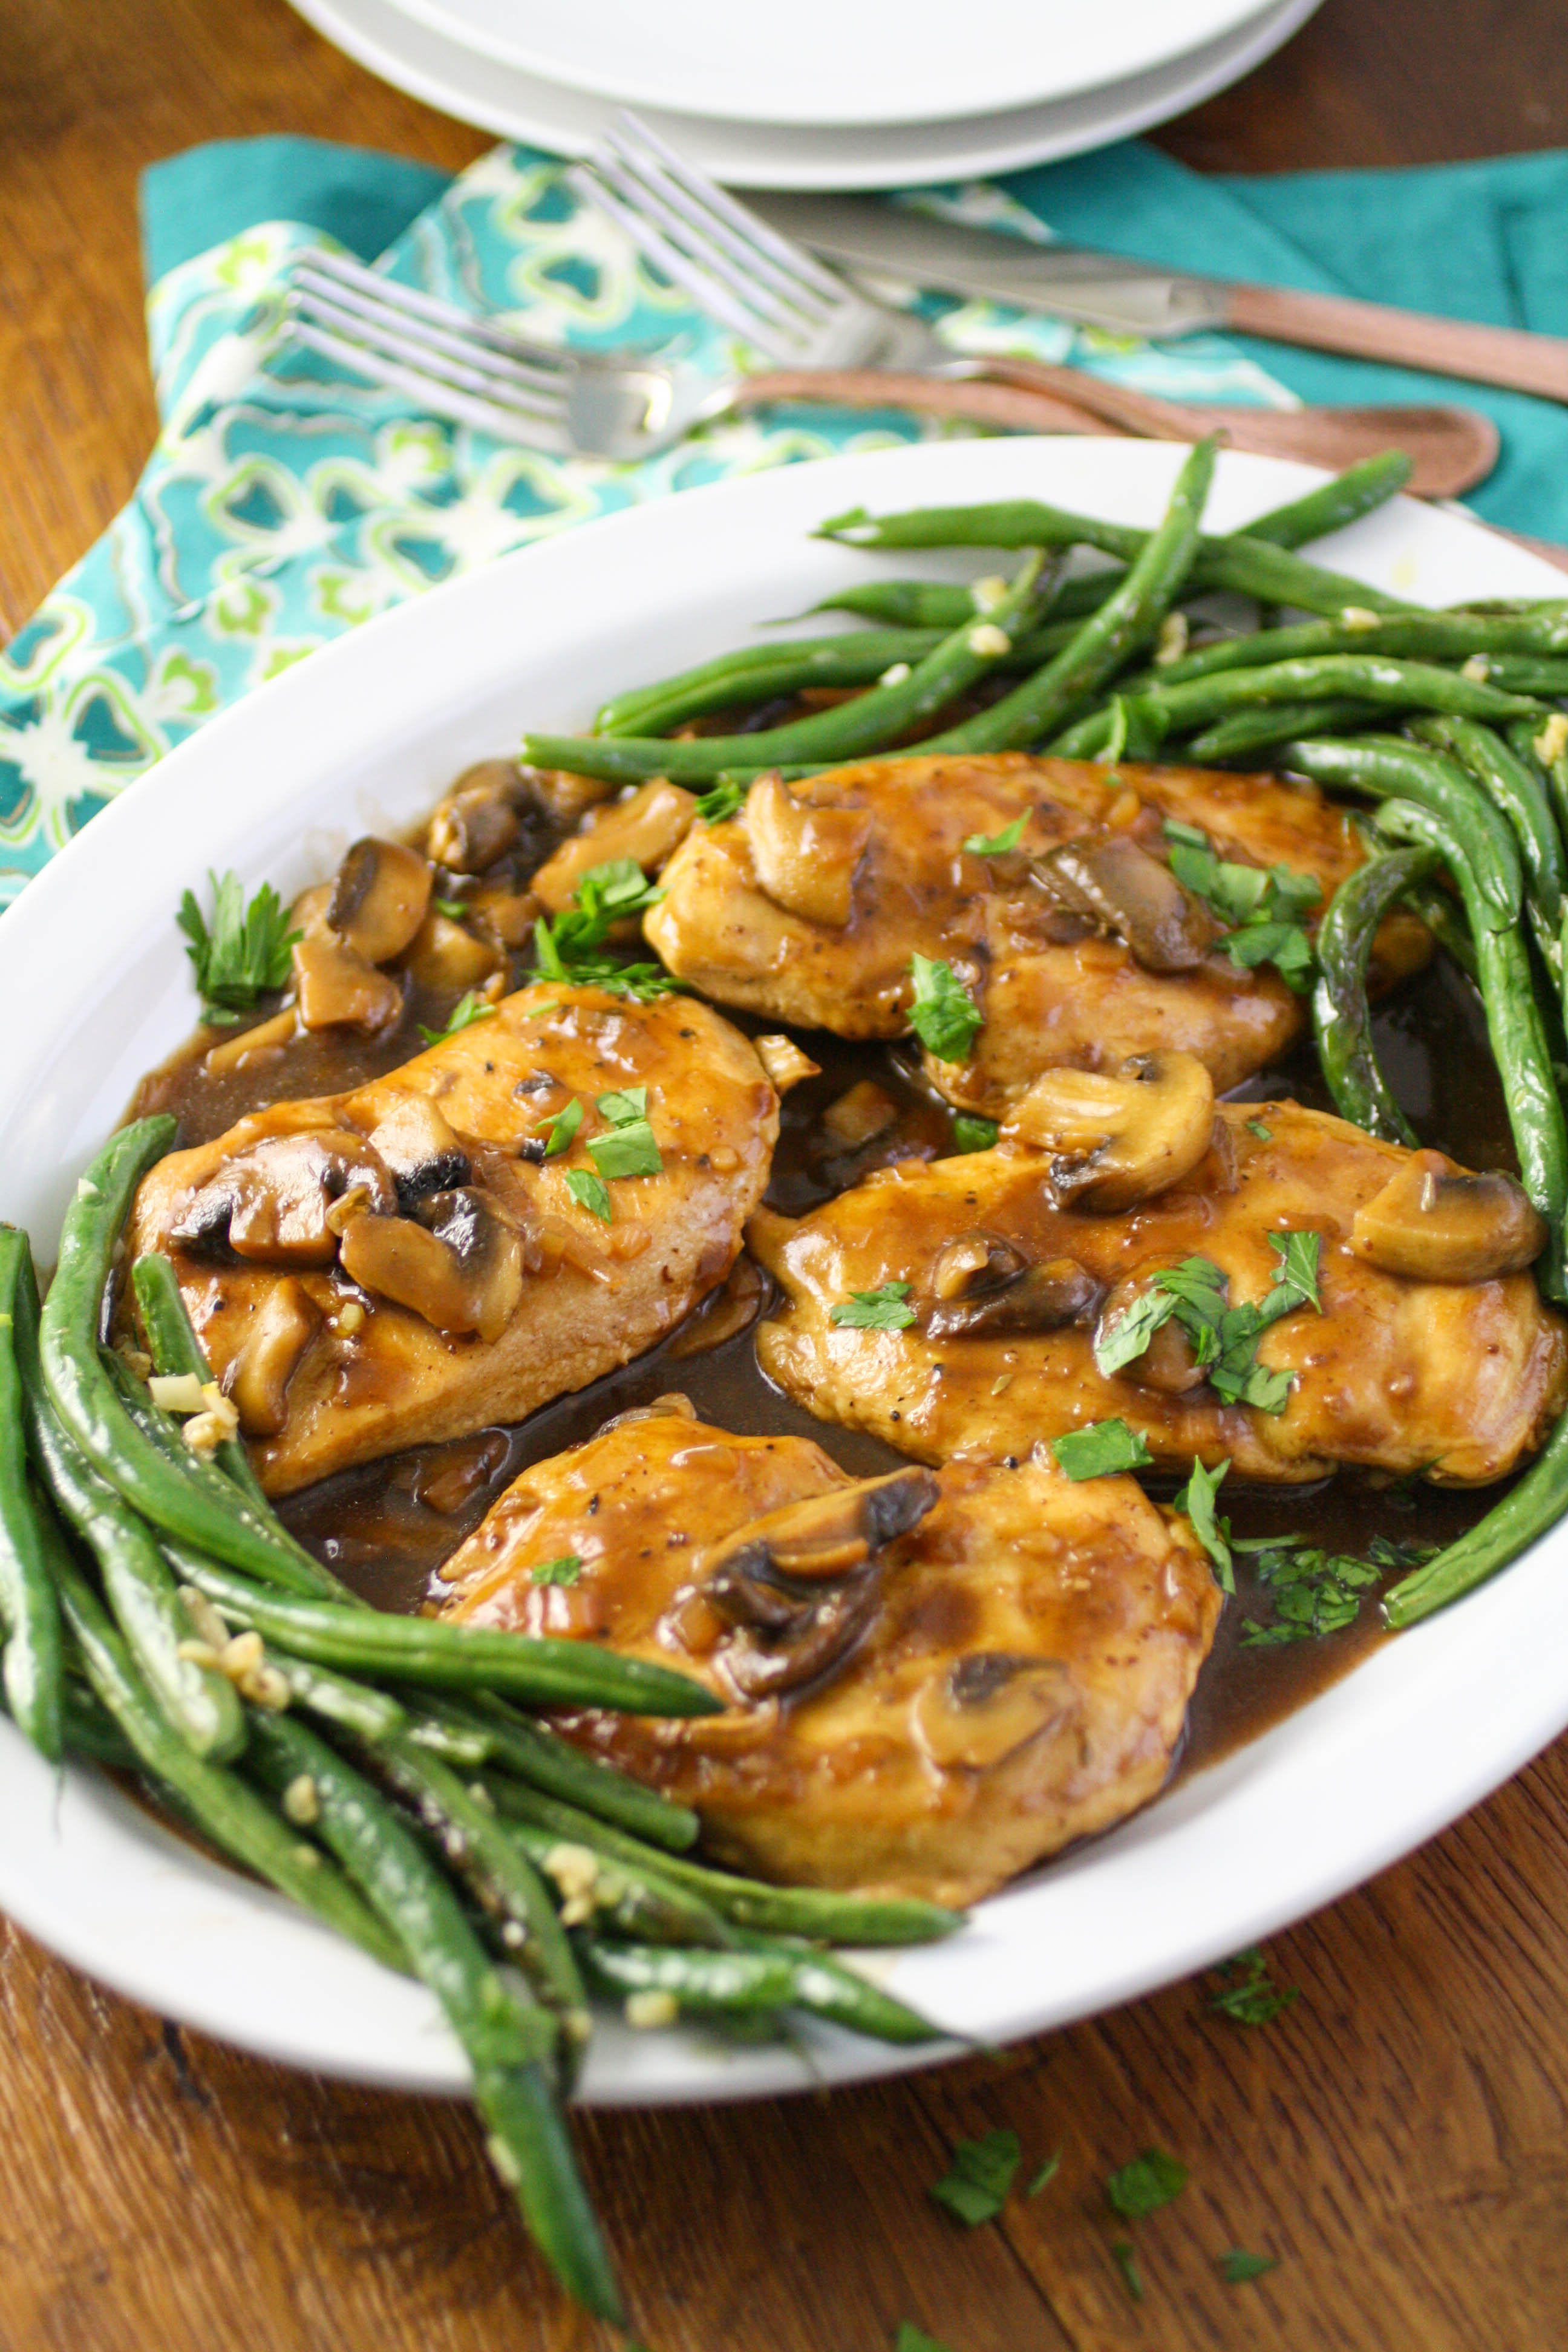 Chicken Madeira is a lovely dish perfect for any meal. Chicken Madeira is great for a special occasion when you want a rich and filling dish.